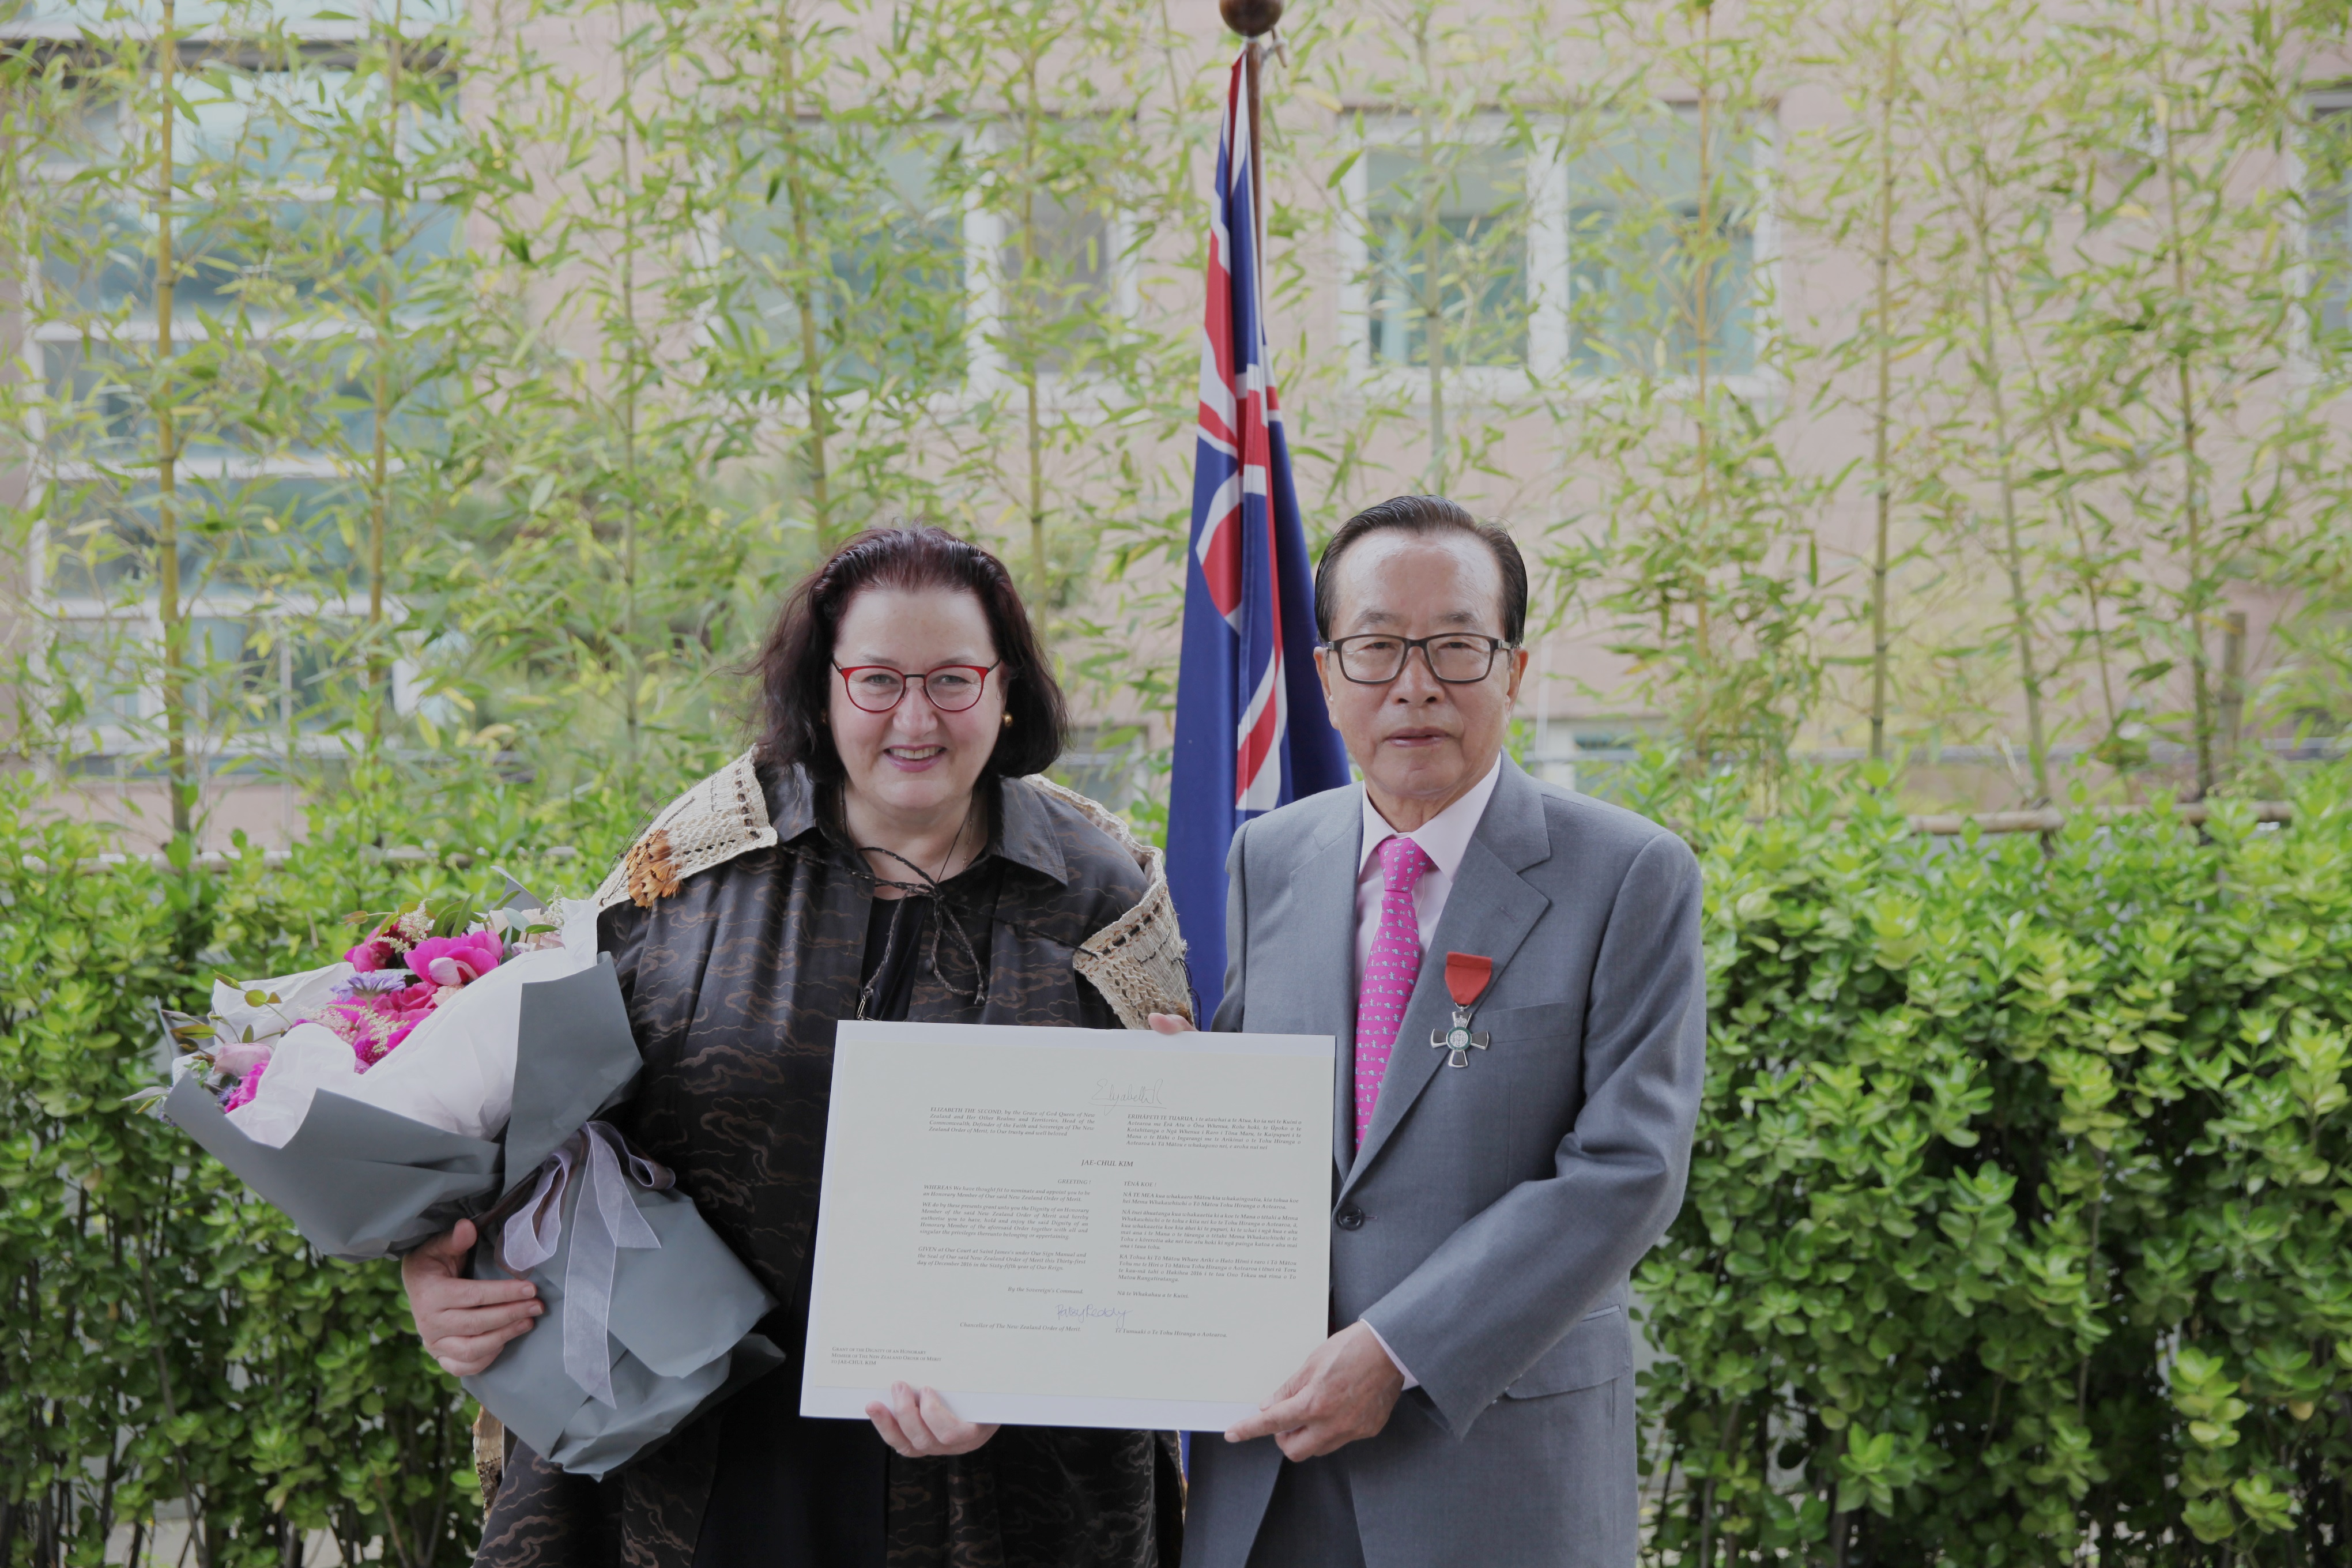 New Zealand Ambassador Clare Fearnley and Dongwon Group Chairman Kim Jae-chul pose for a photo.